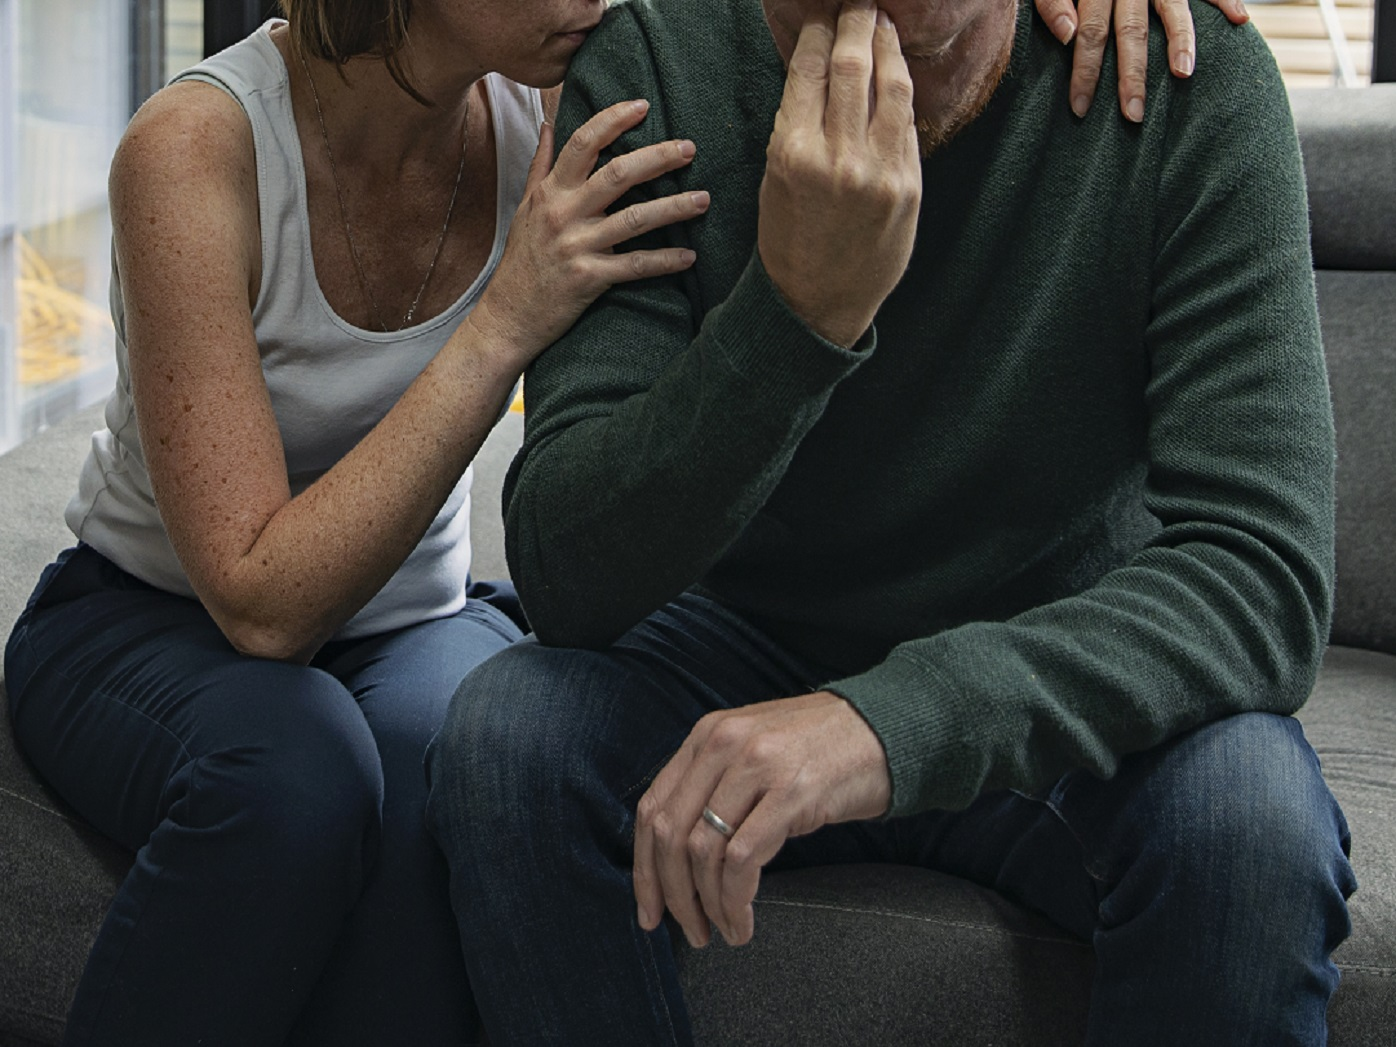 Couple miscarriage or pregnancy loss.